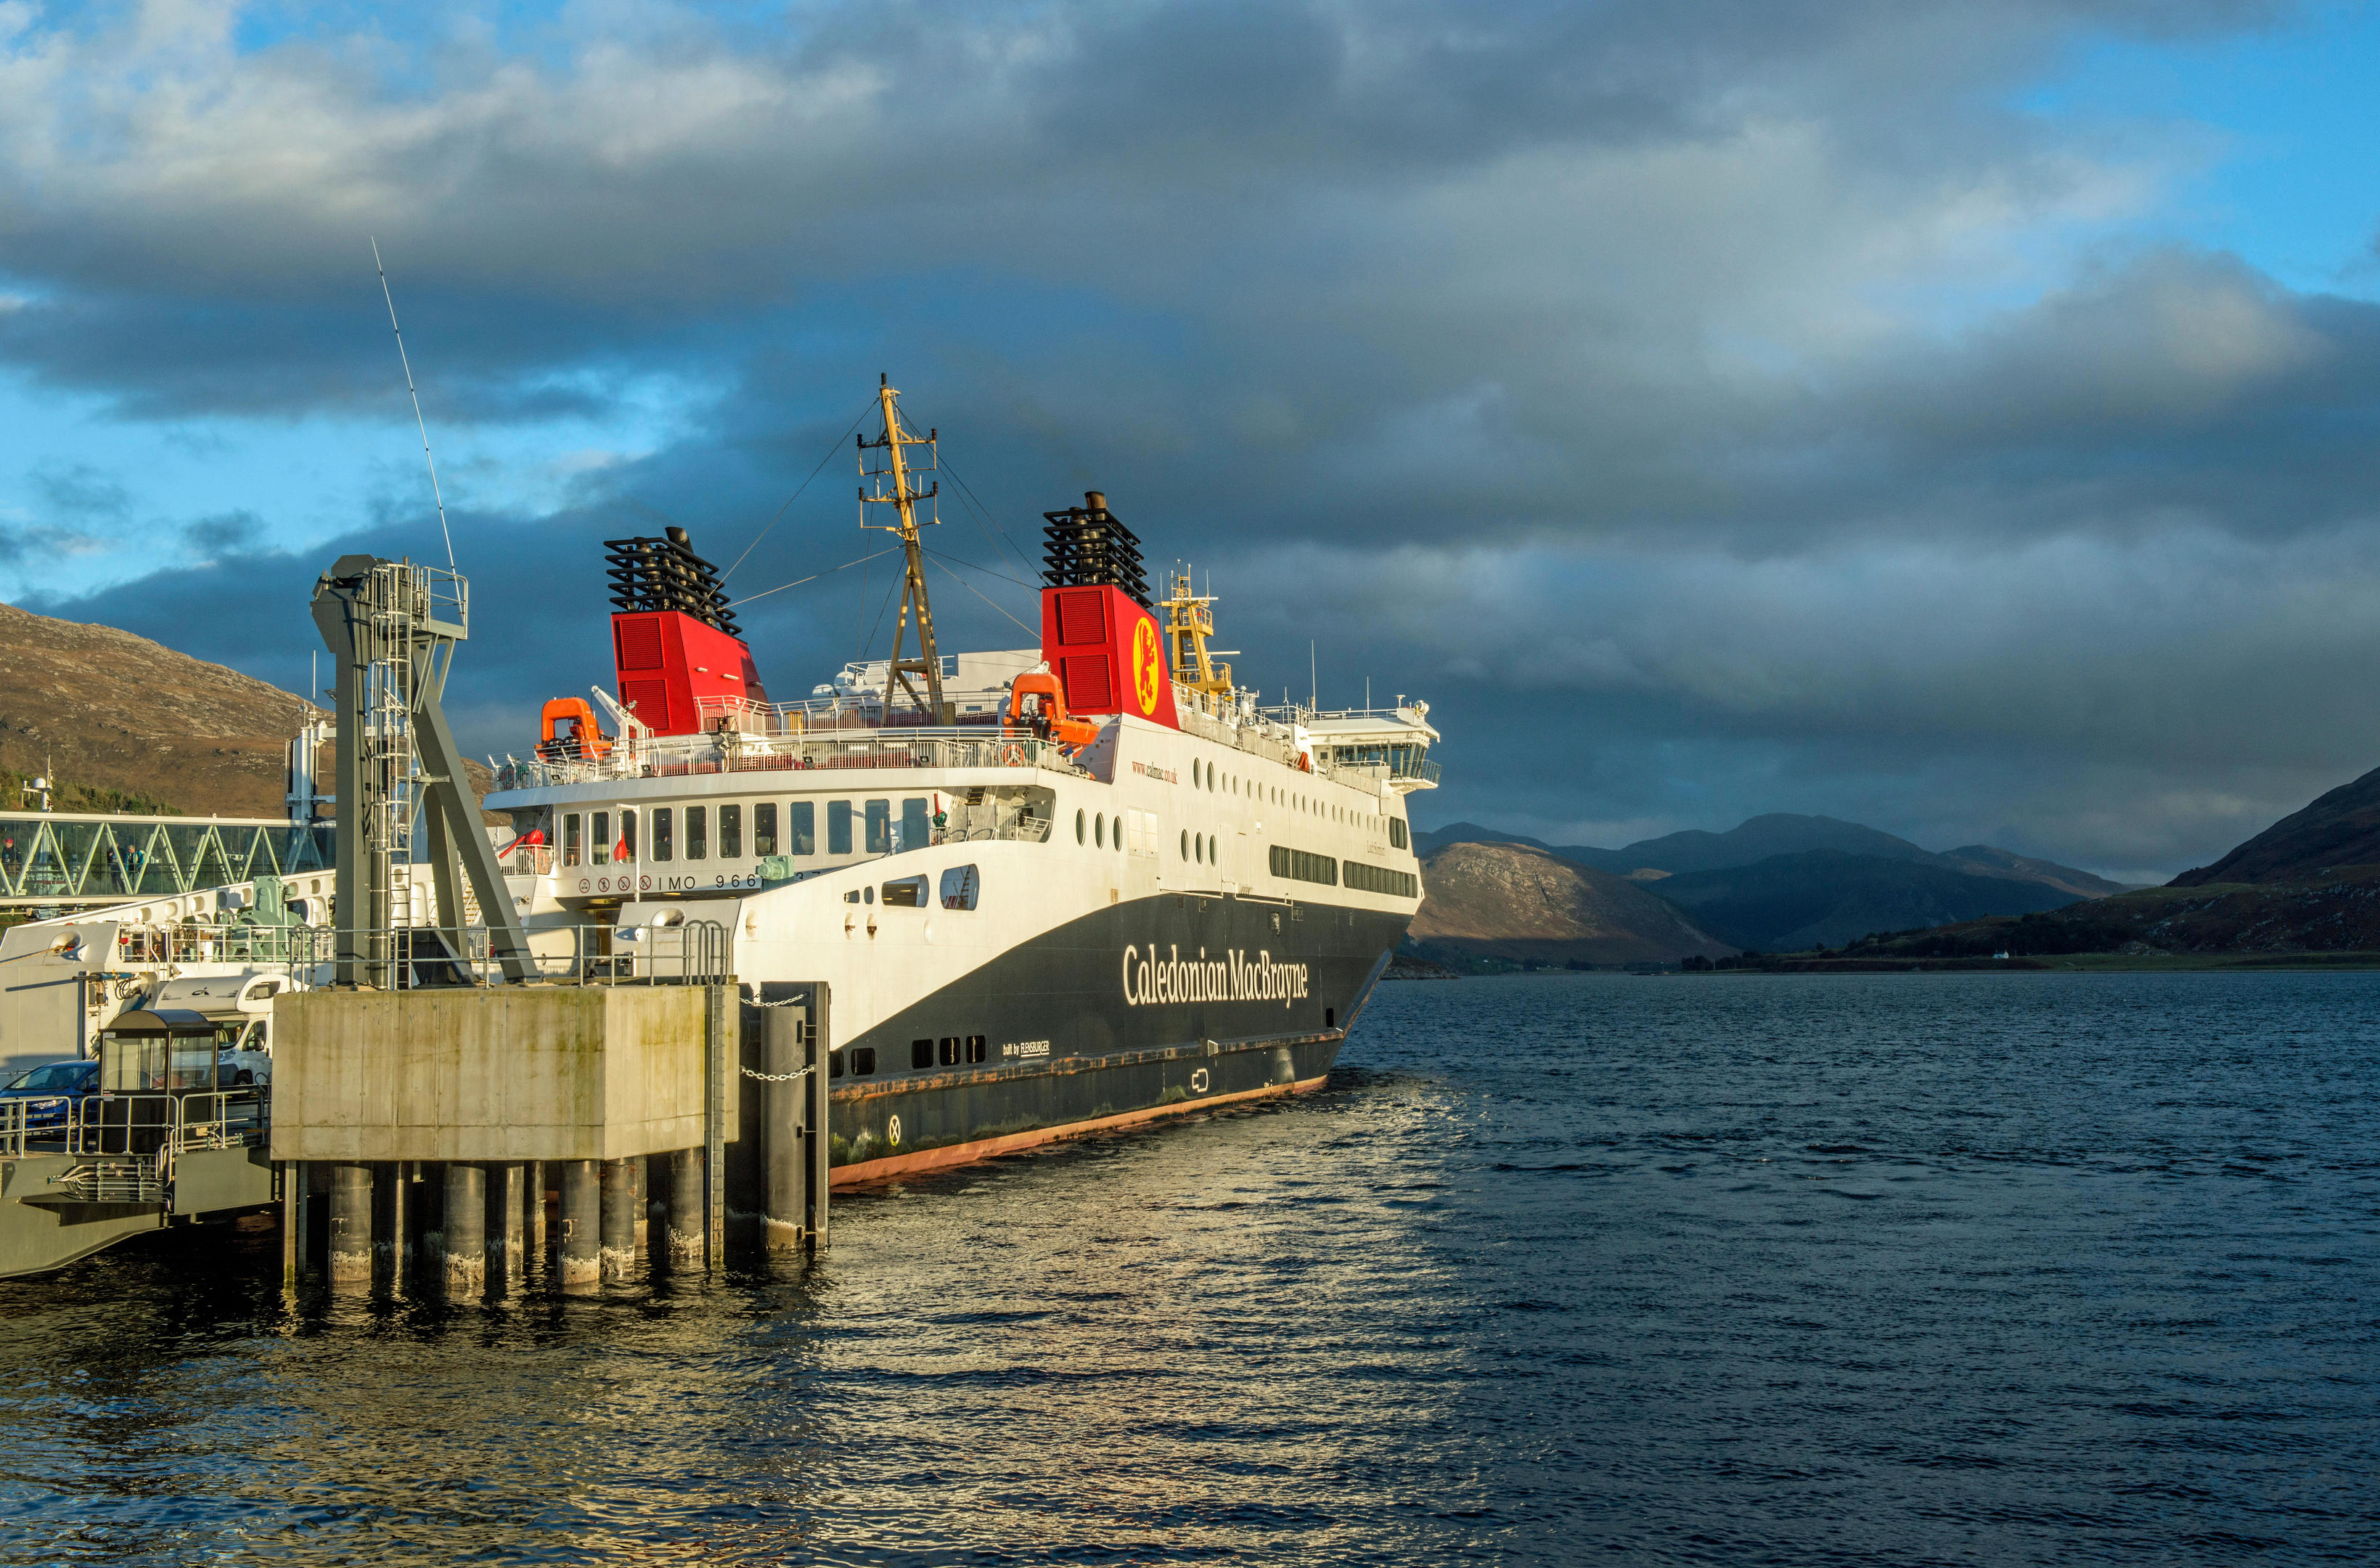 The CalMac ferry from Ullapool to Stornoway, Scotland